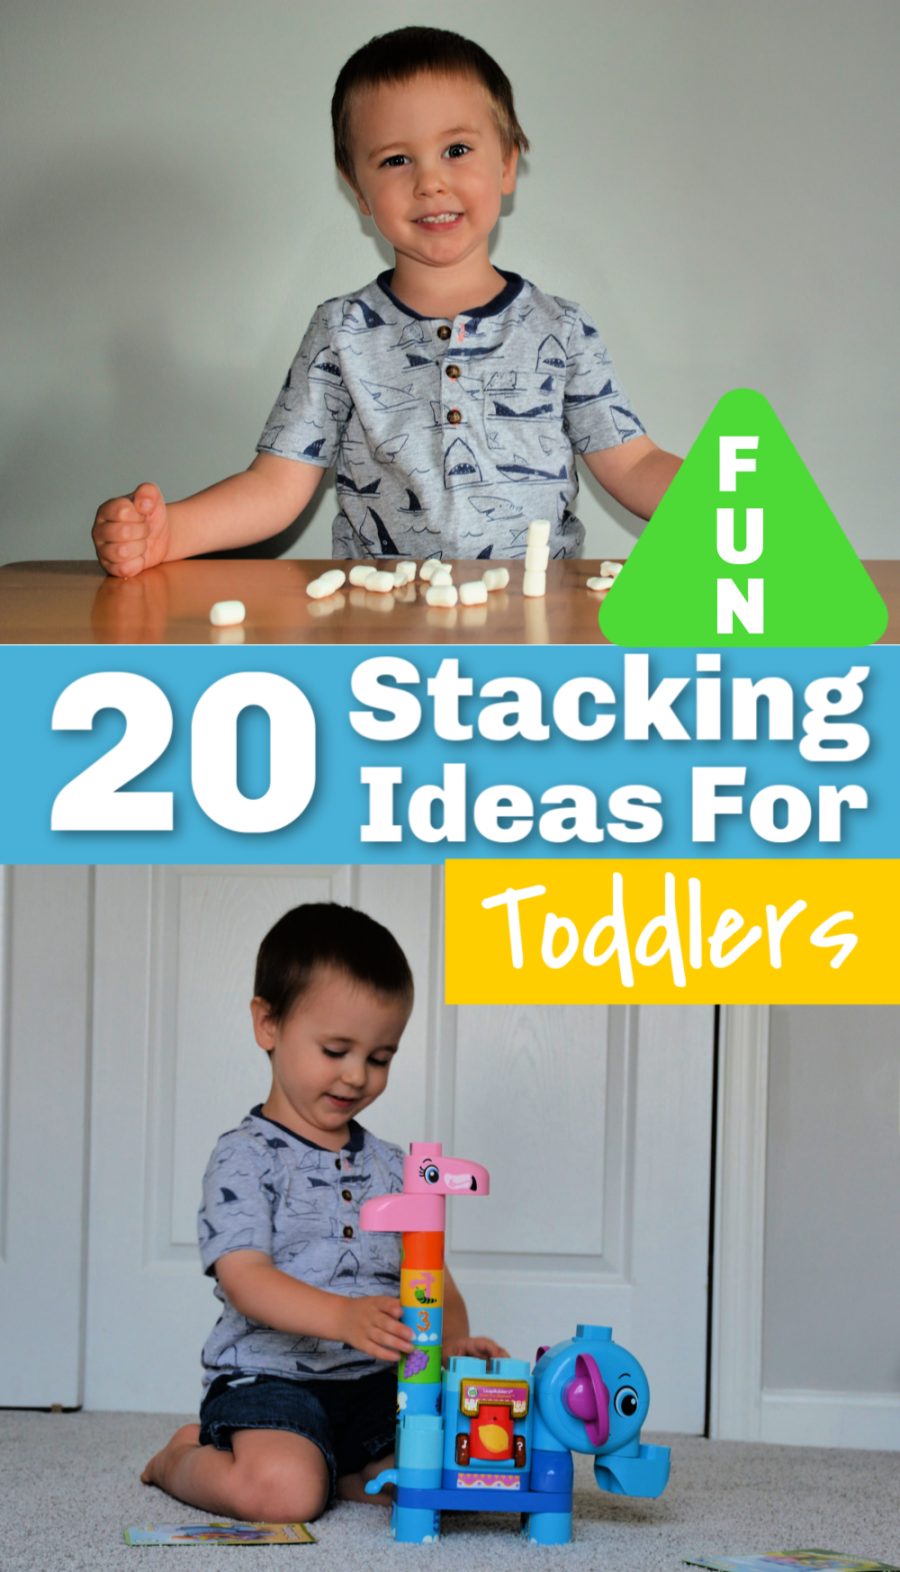 Ad 20 Fun Stacking Ideas For Toddlers Including Fun New Blocks From Leapfrog Leapbuildersbb Toddler Activities Fun Activities For Kids Toddler Preschool